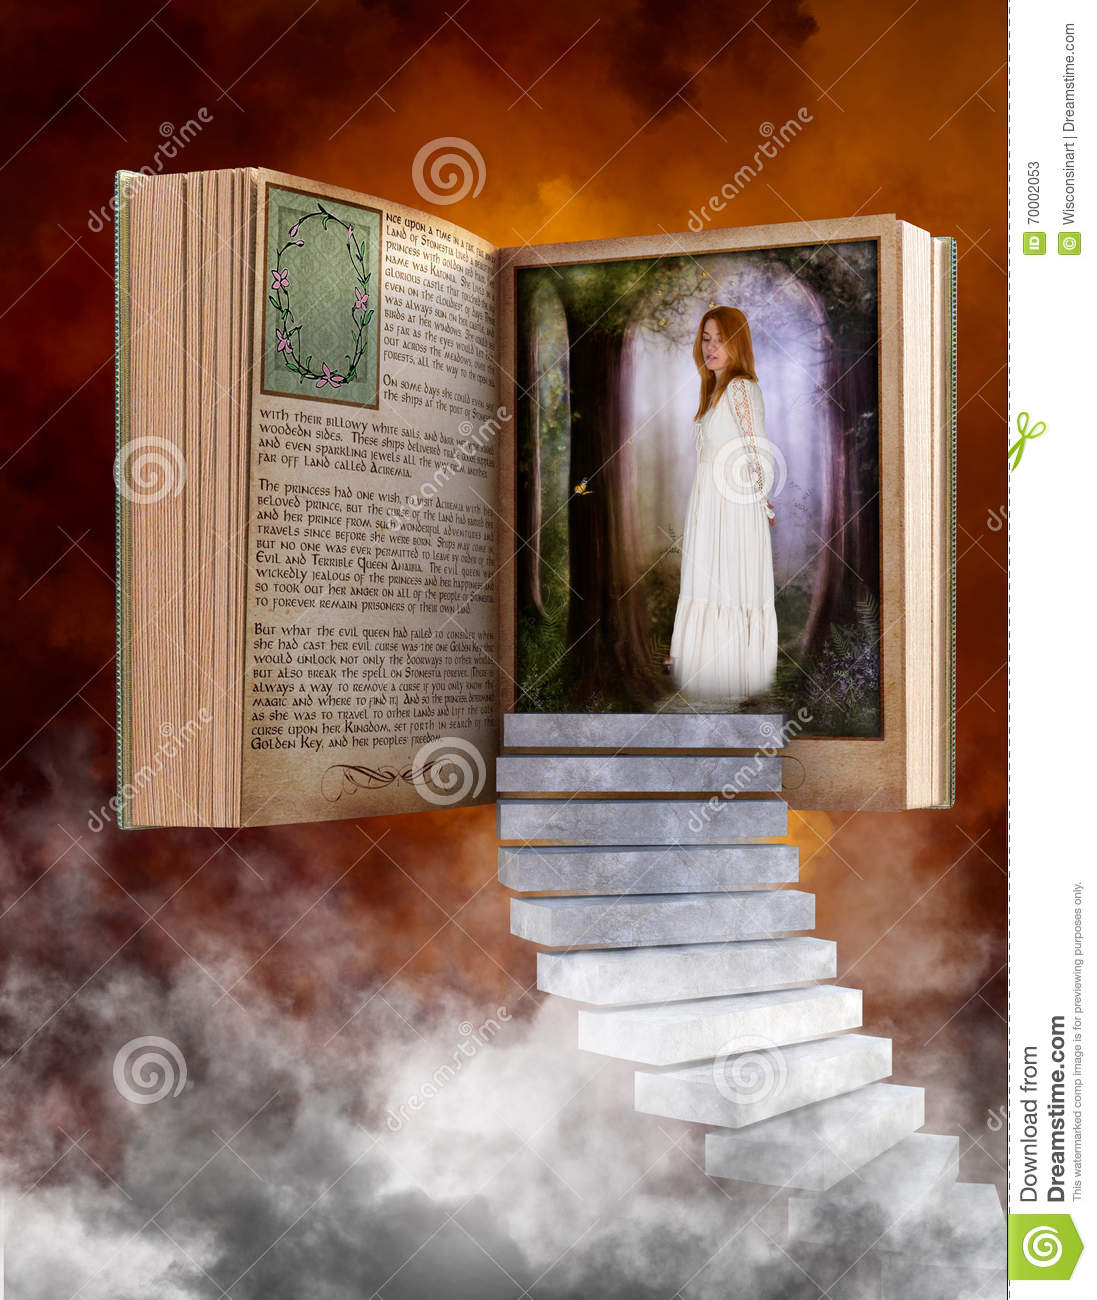 storybook, reading, fantasy, love, imagination stock image - image